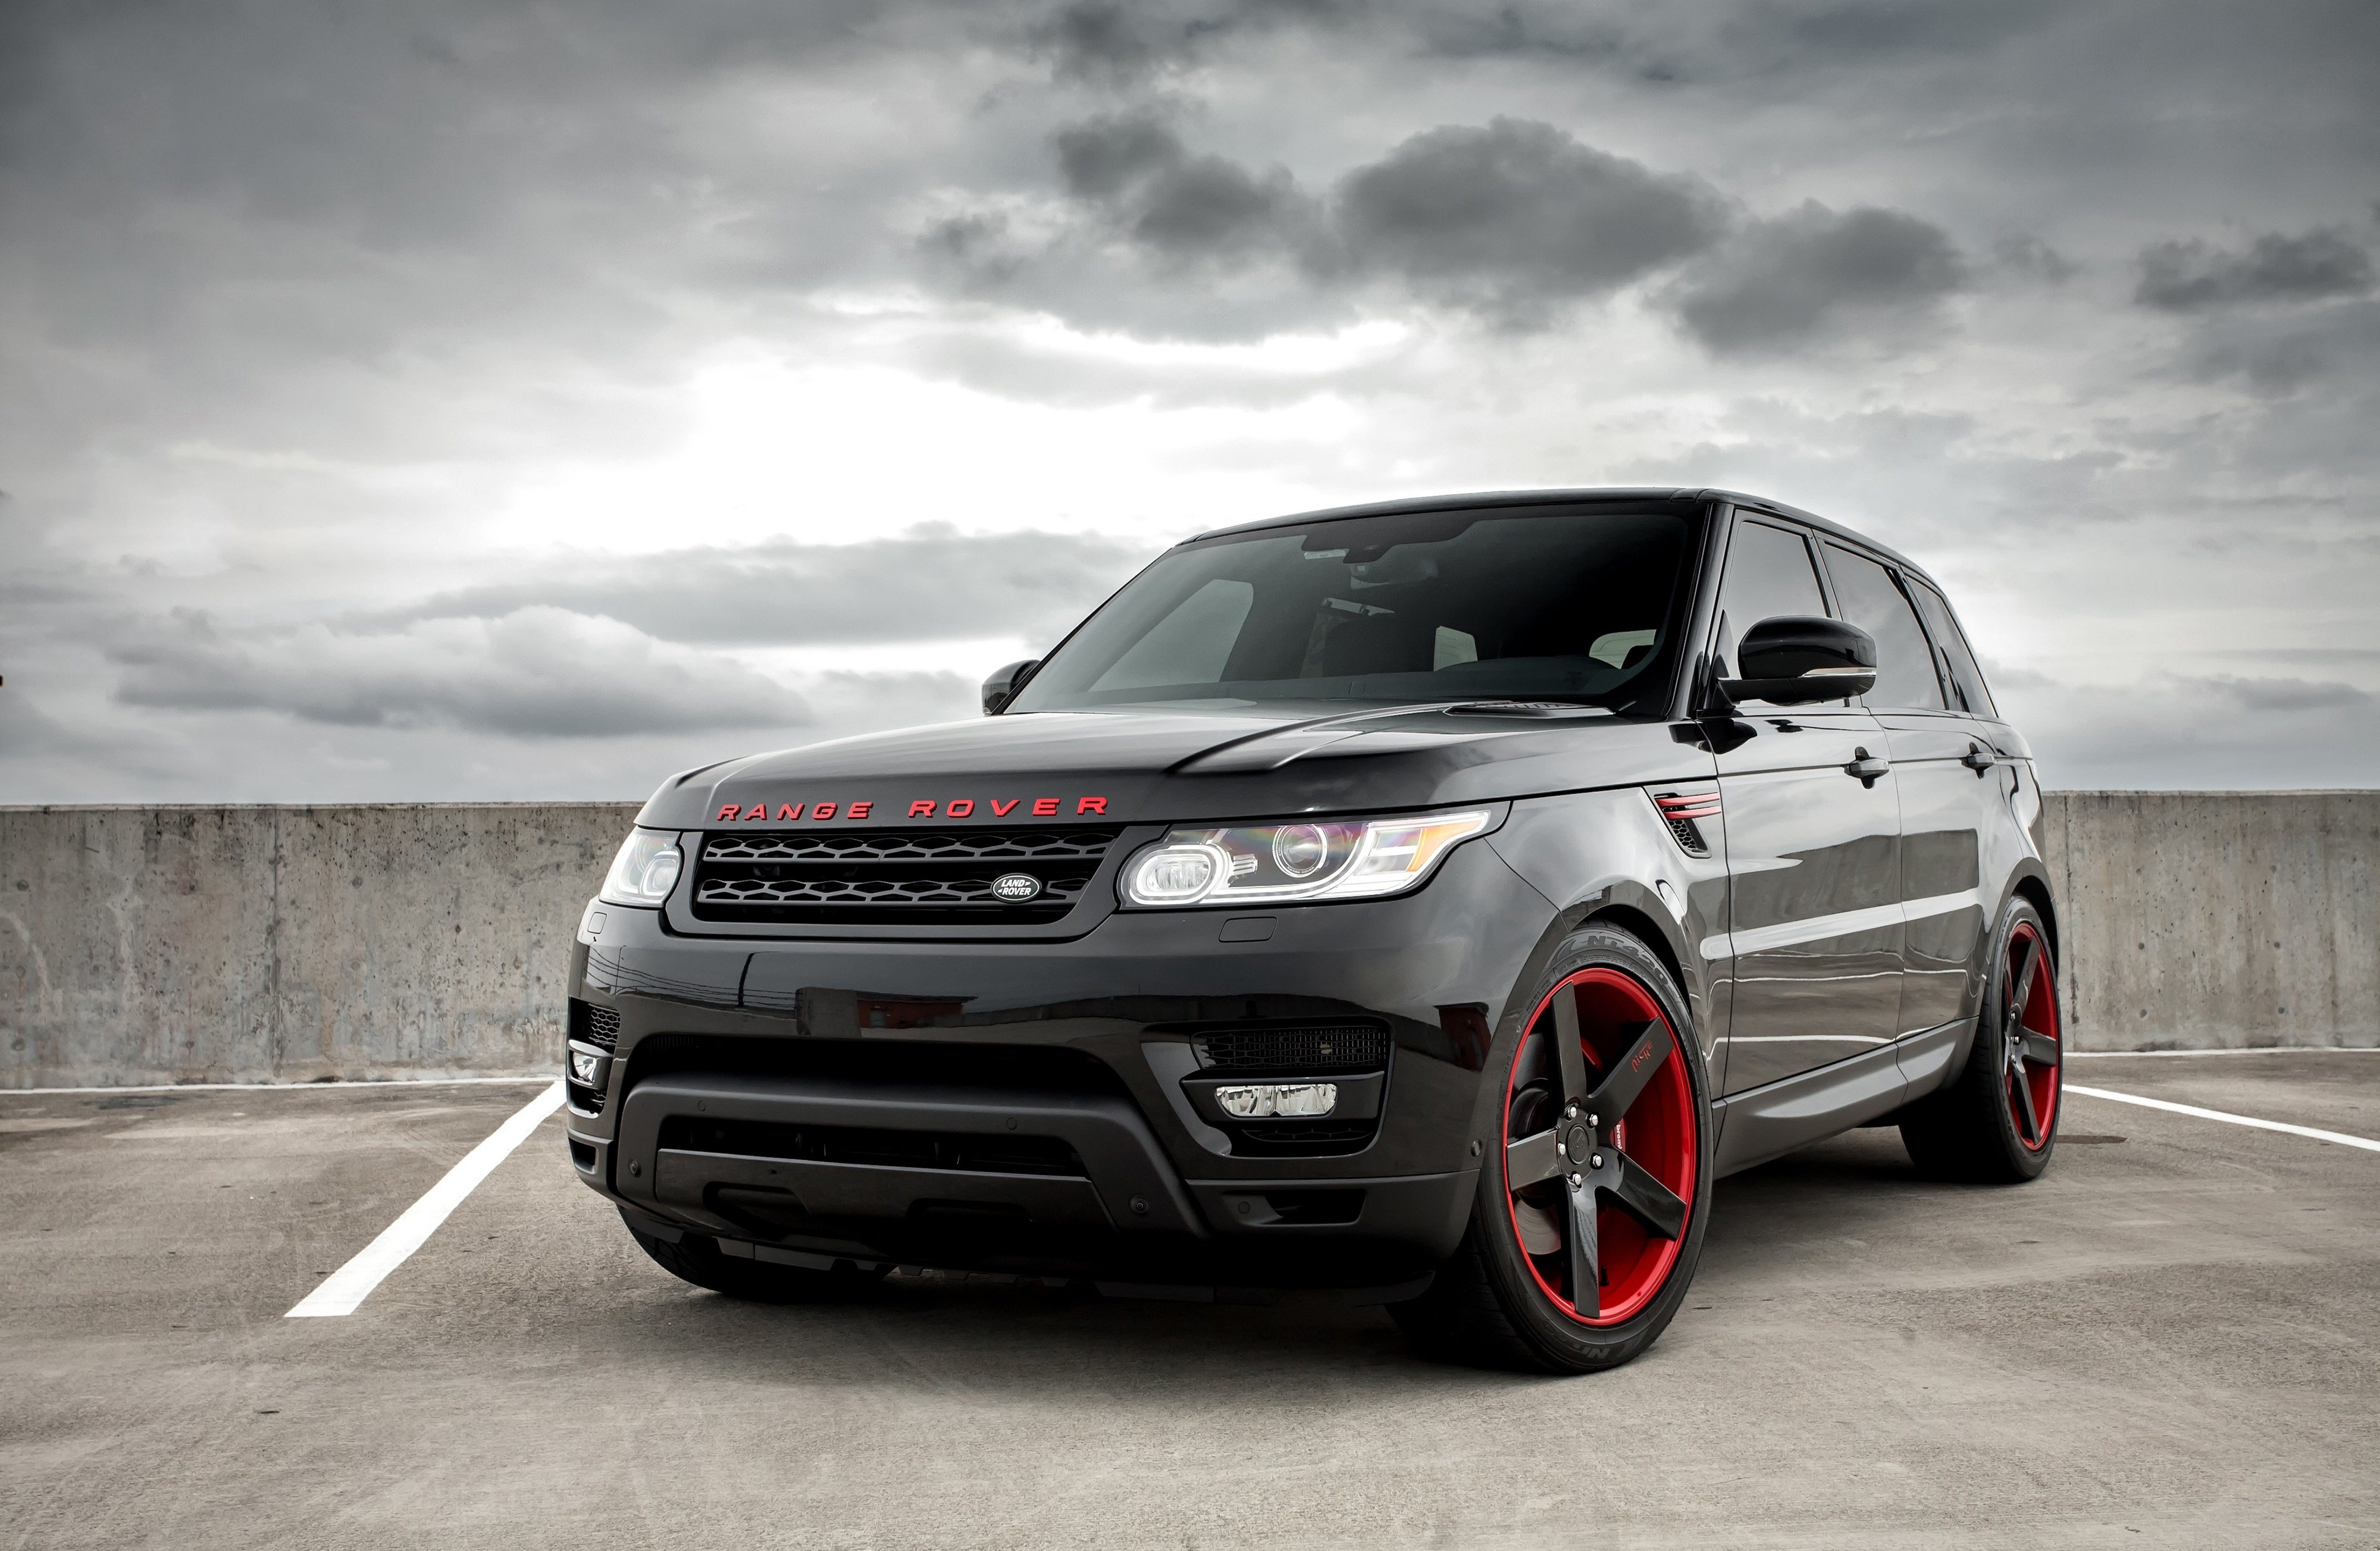 Latest Range Rover 4K Ultra Hd Wallpaper Background Image Free Download